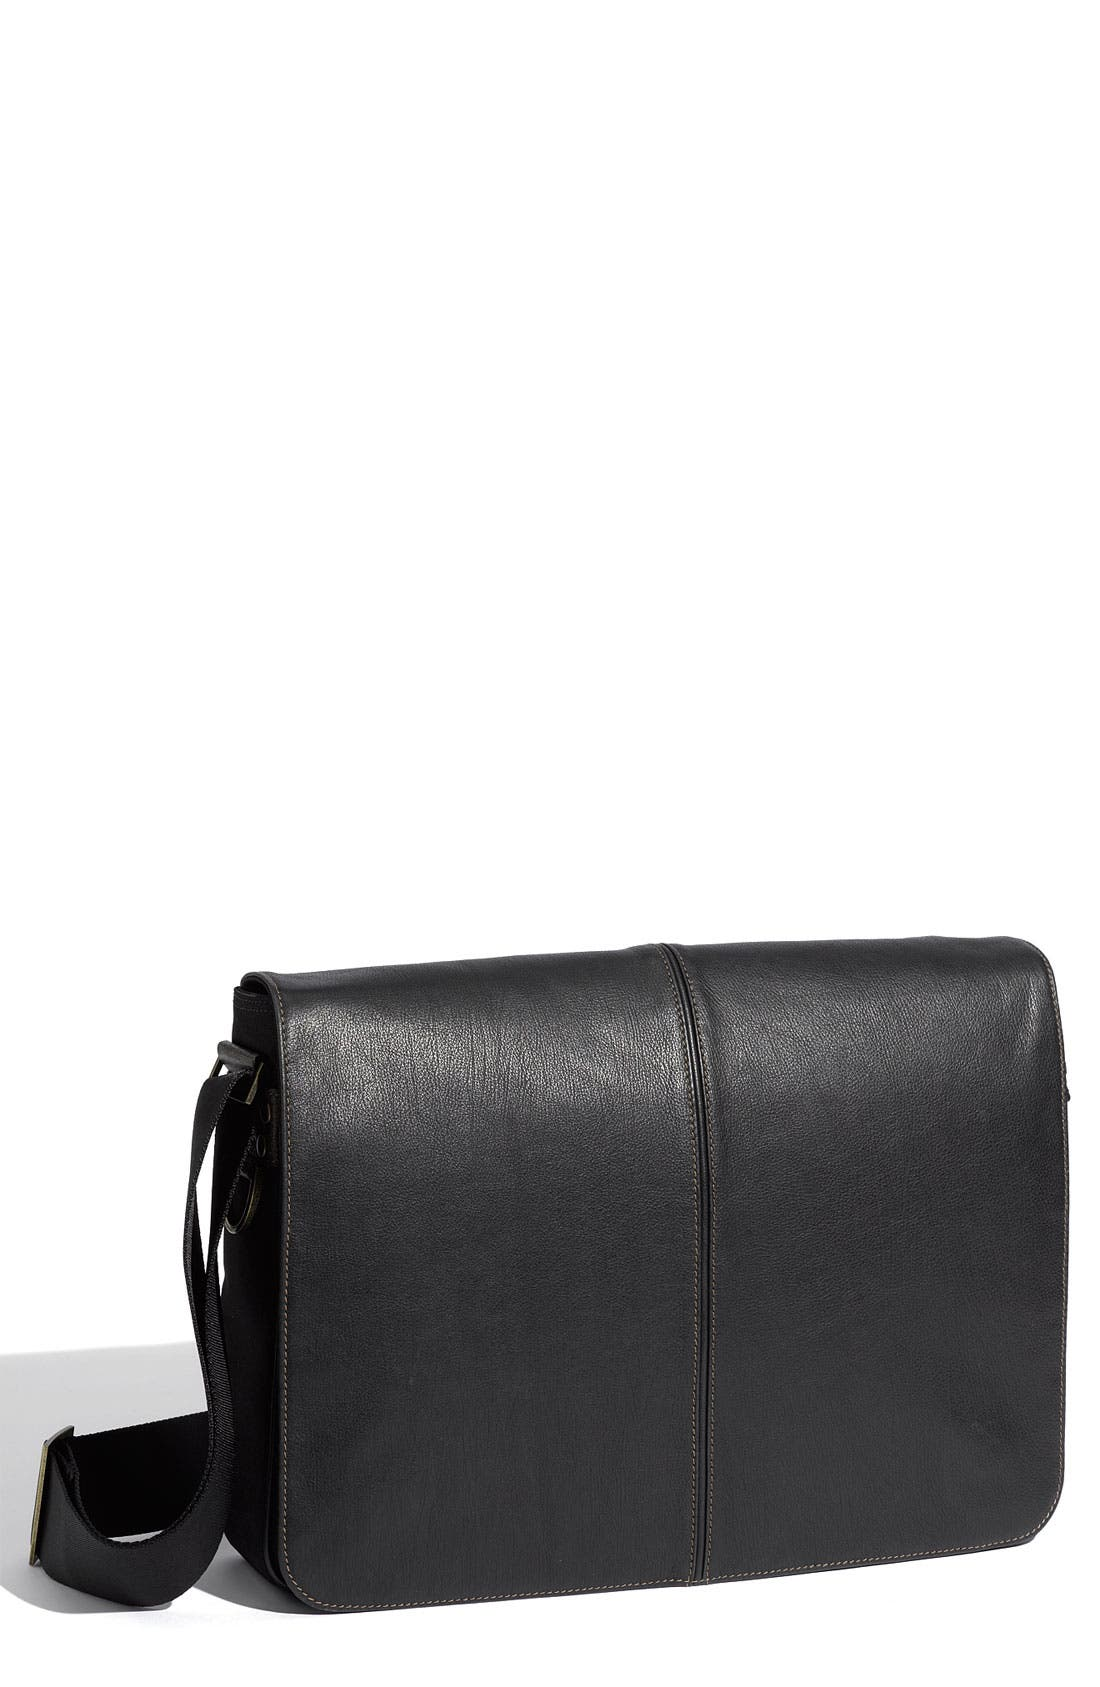 Alternate Image 1 Selected - Boconi 'Leon Slim Mailbag' Messenger Bag